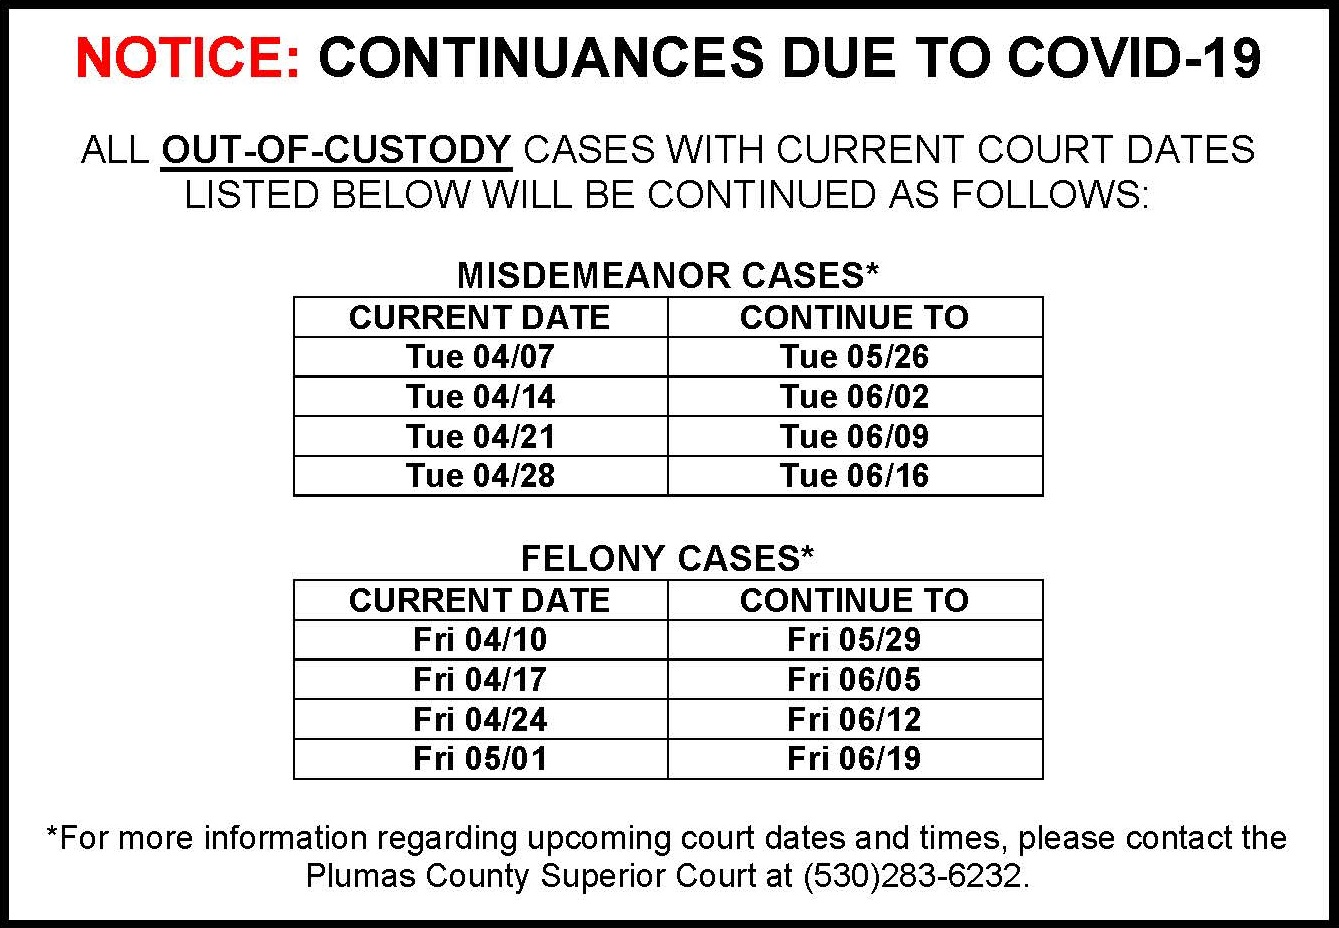 COVID-19 Notice - Updated 04-07-2020